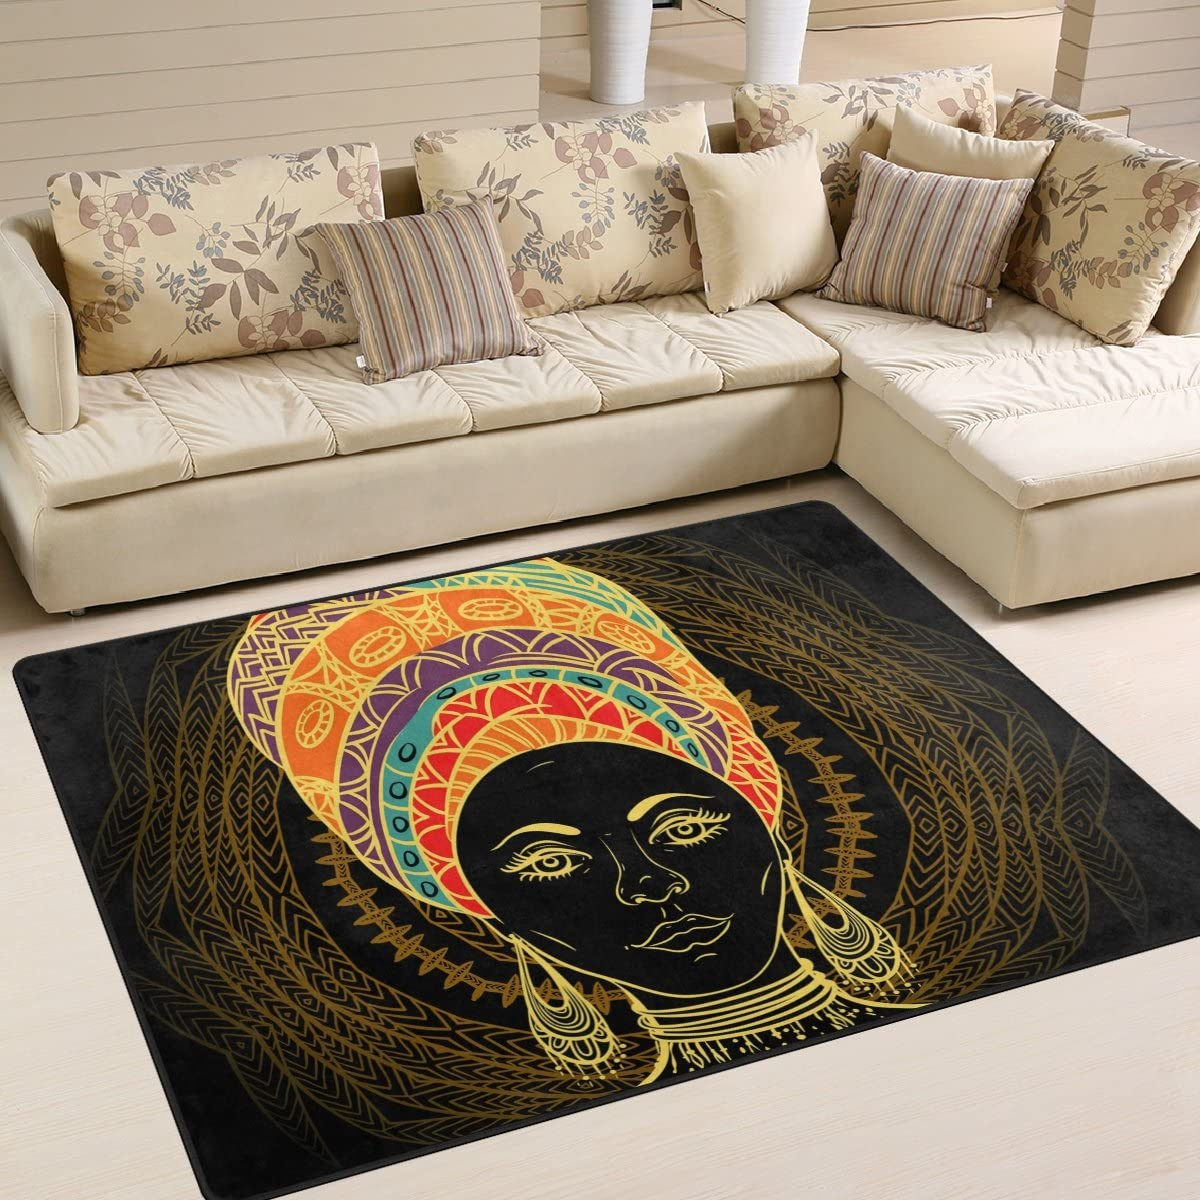 SAVSV Large Area Rugs African Woman in Turban Printed,Lightweight Water-Repellent Floor Carpet for Living Room Bedroom Home Deck Patio,6 8 x 4 10